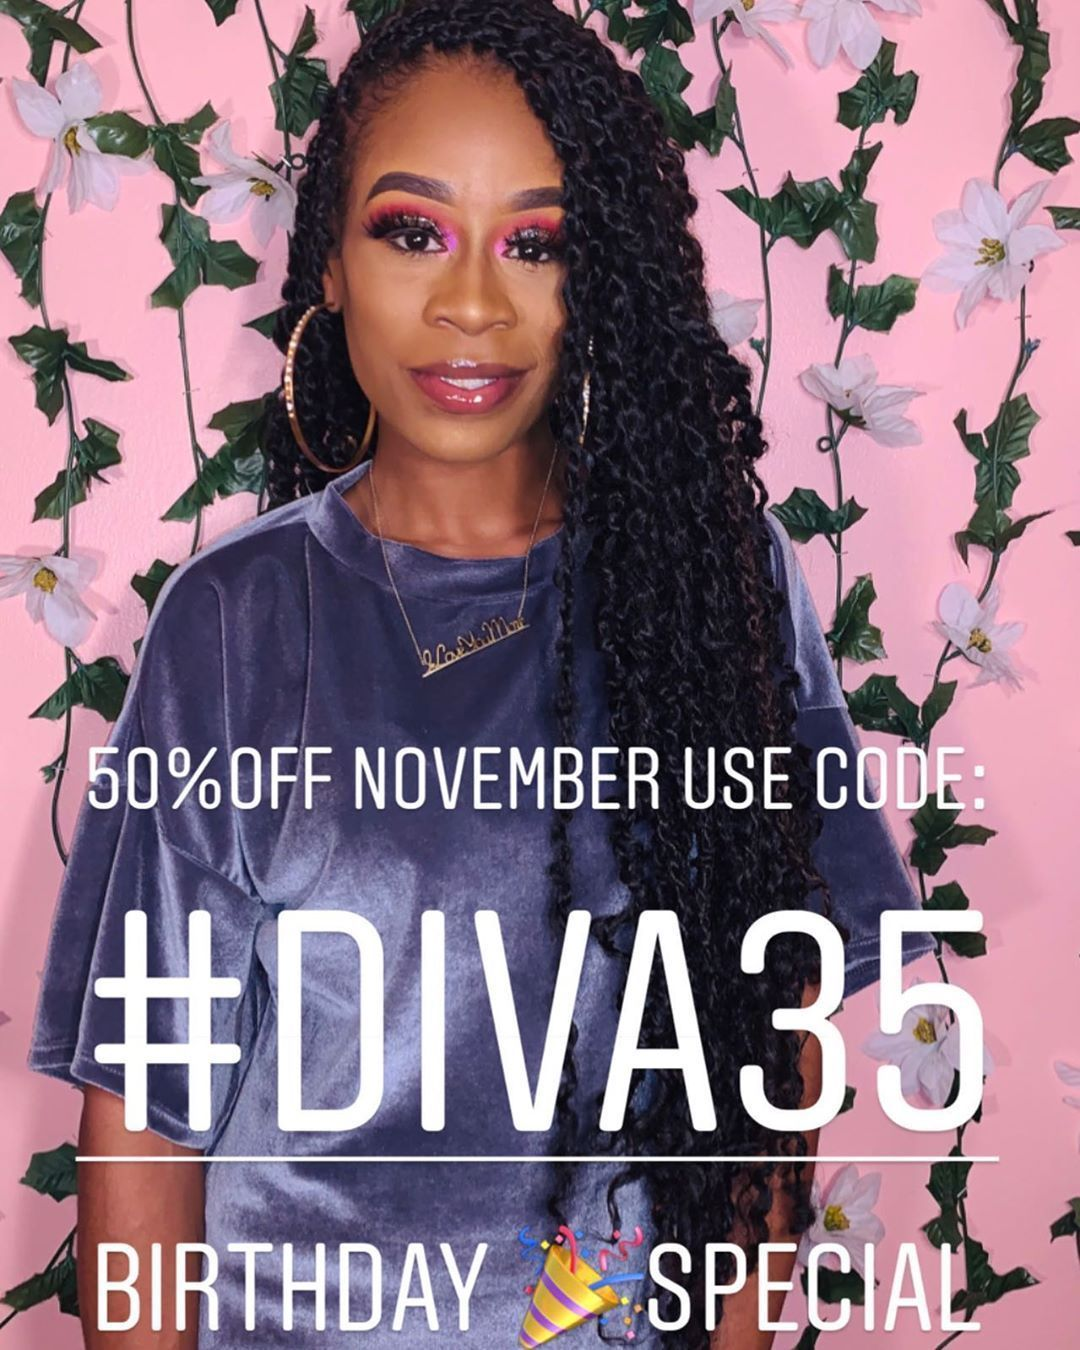 Slots are getting taken quick !!! Have you taken advantage of this #Diva35 Birthday  Special ALL MONTH LONG 50% odd #passiontwists installation  (hair not included)  Dont miss your chance to get slayed by NYCs Passion Twist Killa  #hausofpassion #passiontwistsnyc #passiontwist #protectivehairstyles #explore #instagram #hairad #hairspecial #naturalhair #curlyhair #healthynaturalhair #healthyhair #beauty #mua #blog #sza #4hrs #igers #haironinstagram #haironinsta #passiontwistshairstylelong Slots a #passiontwistshairstylelong